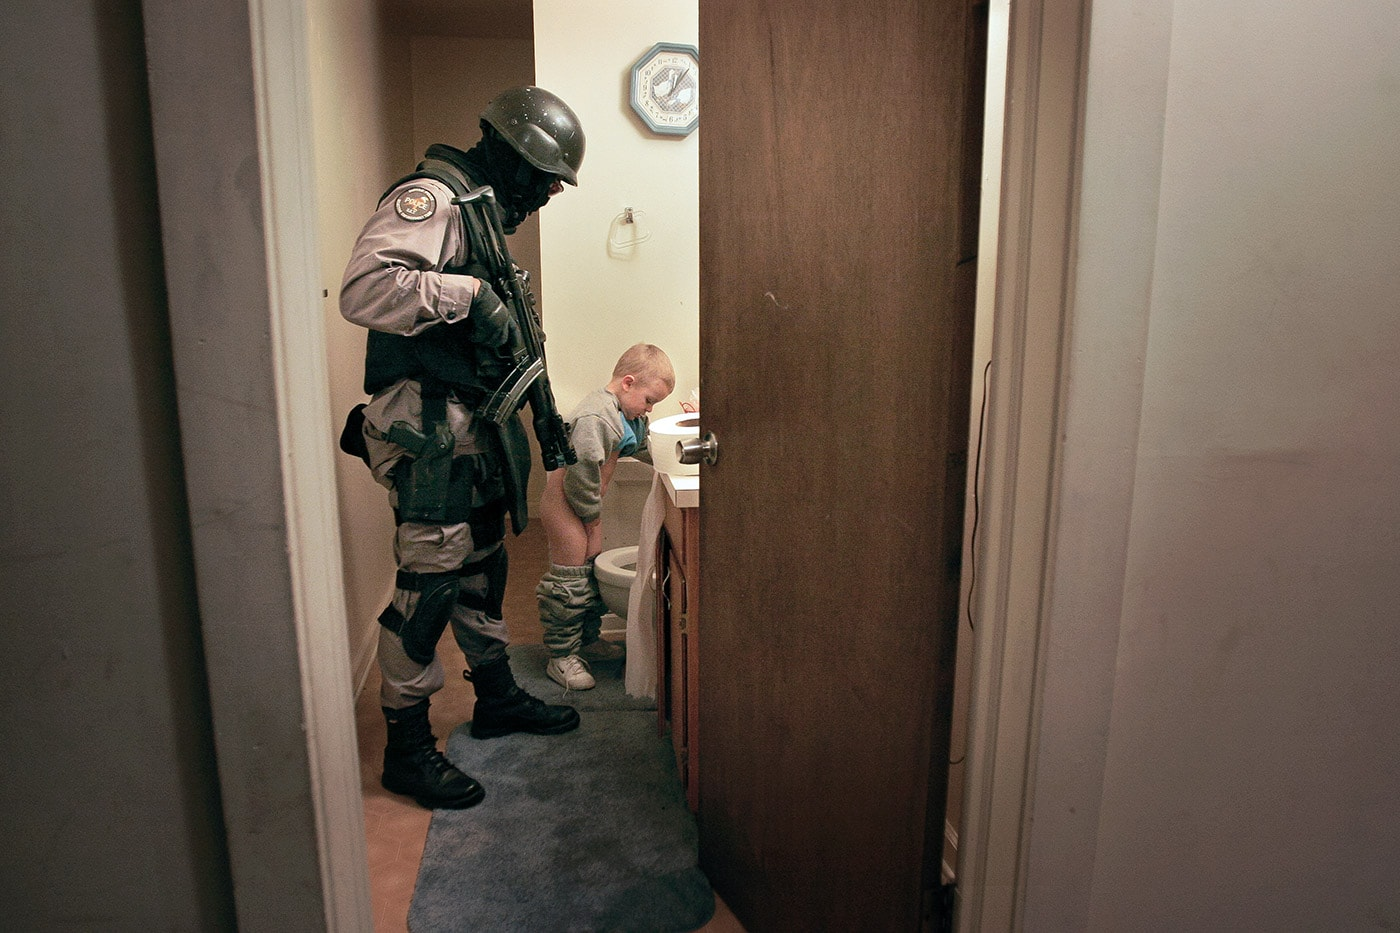 A Durham Police Department Selective Enforcement Team officer escorts a child to the bathroom after a drug raid. His mother was detained during the search in the house and was unable to tend to him.